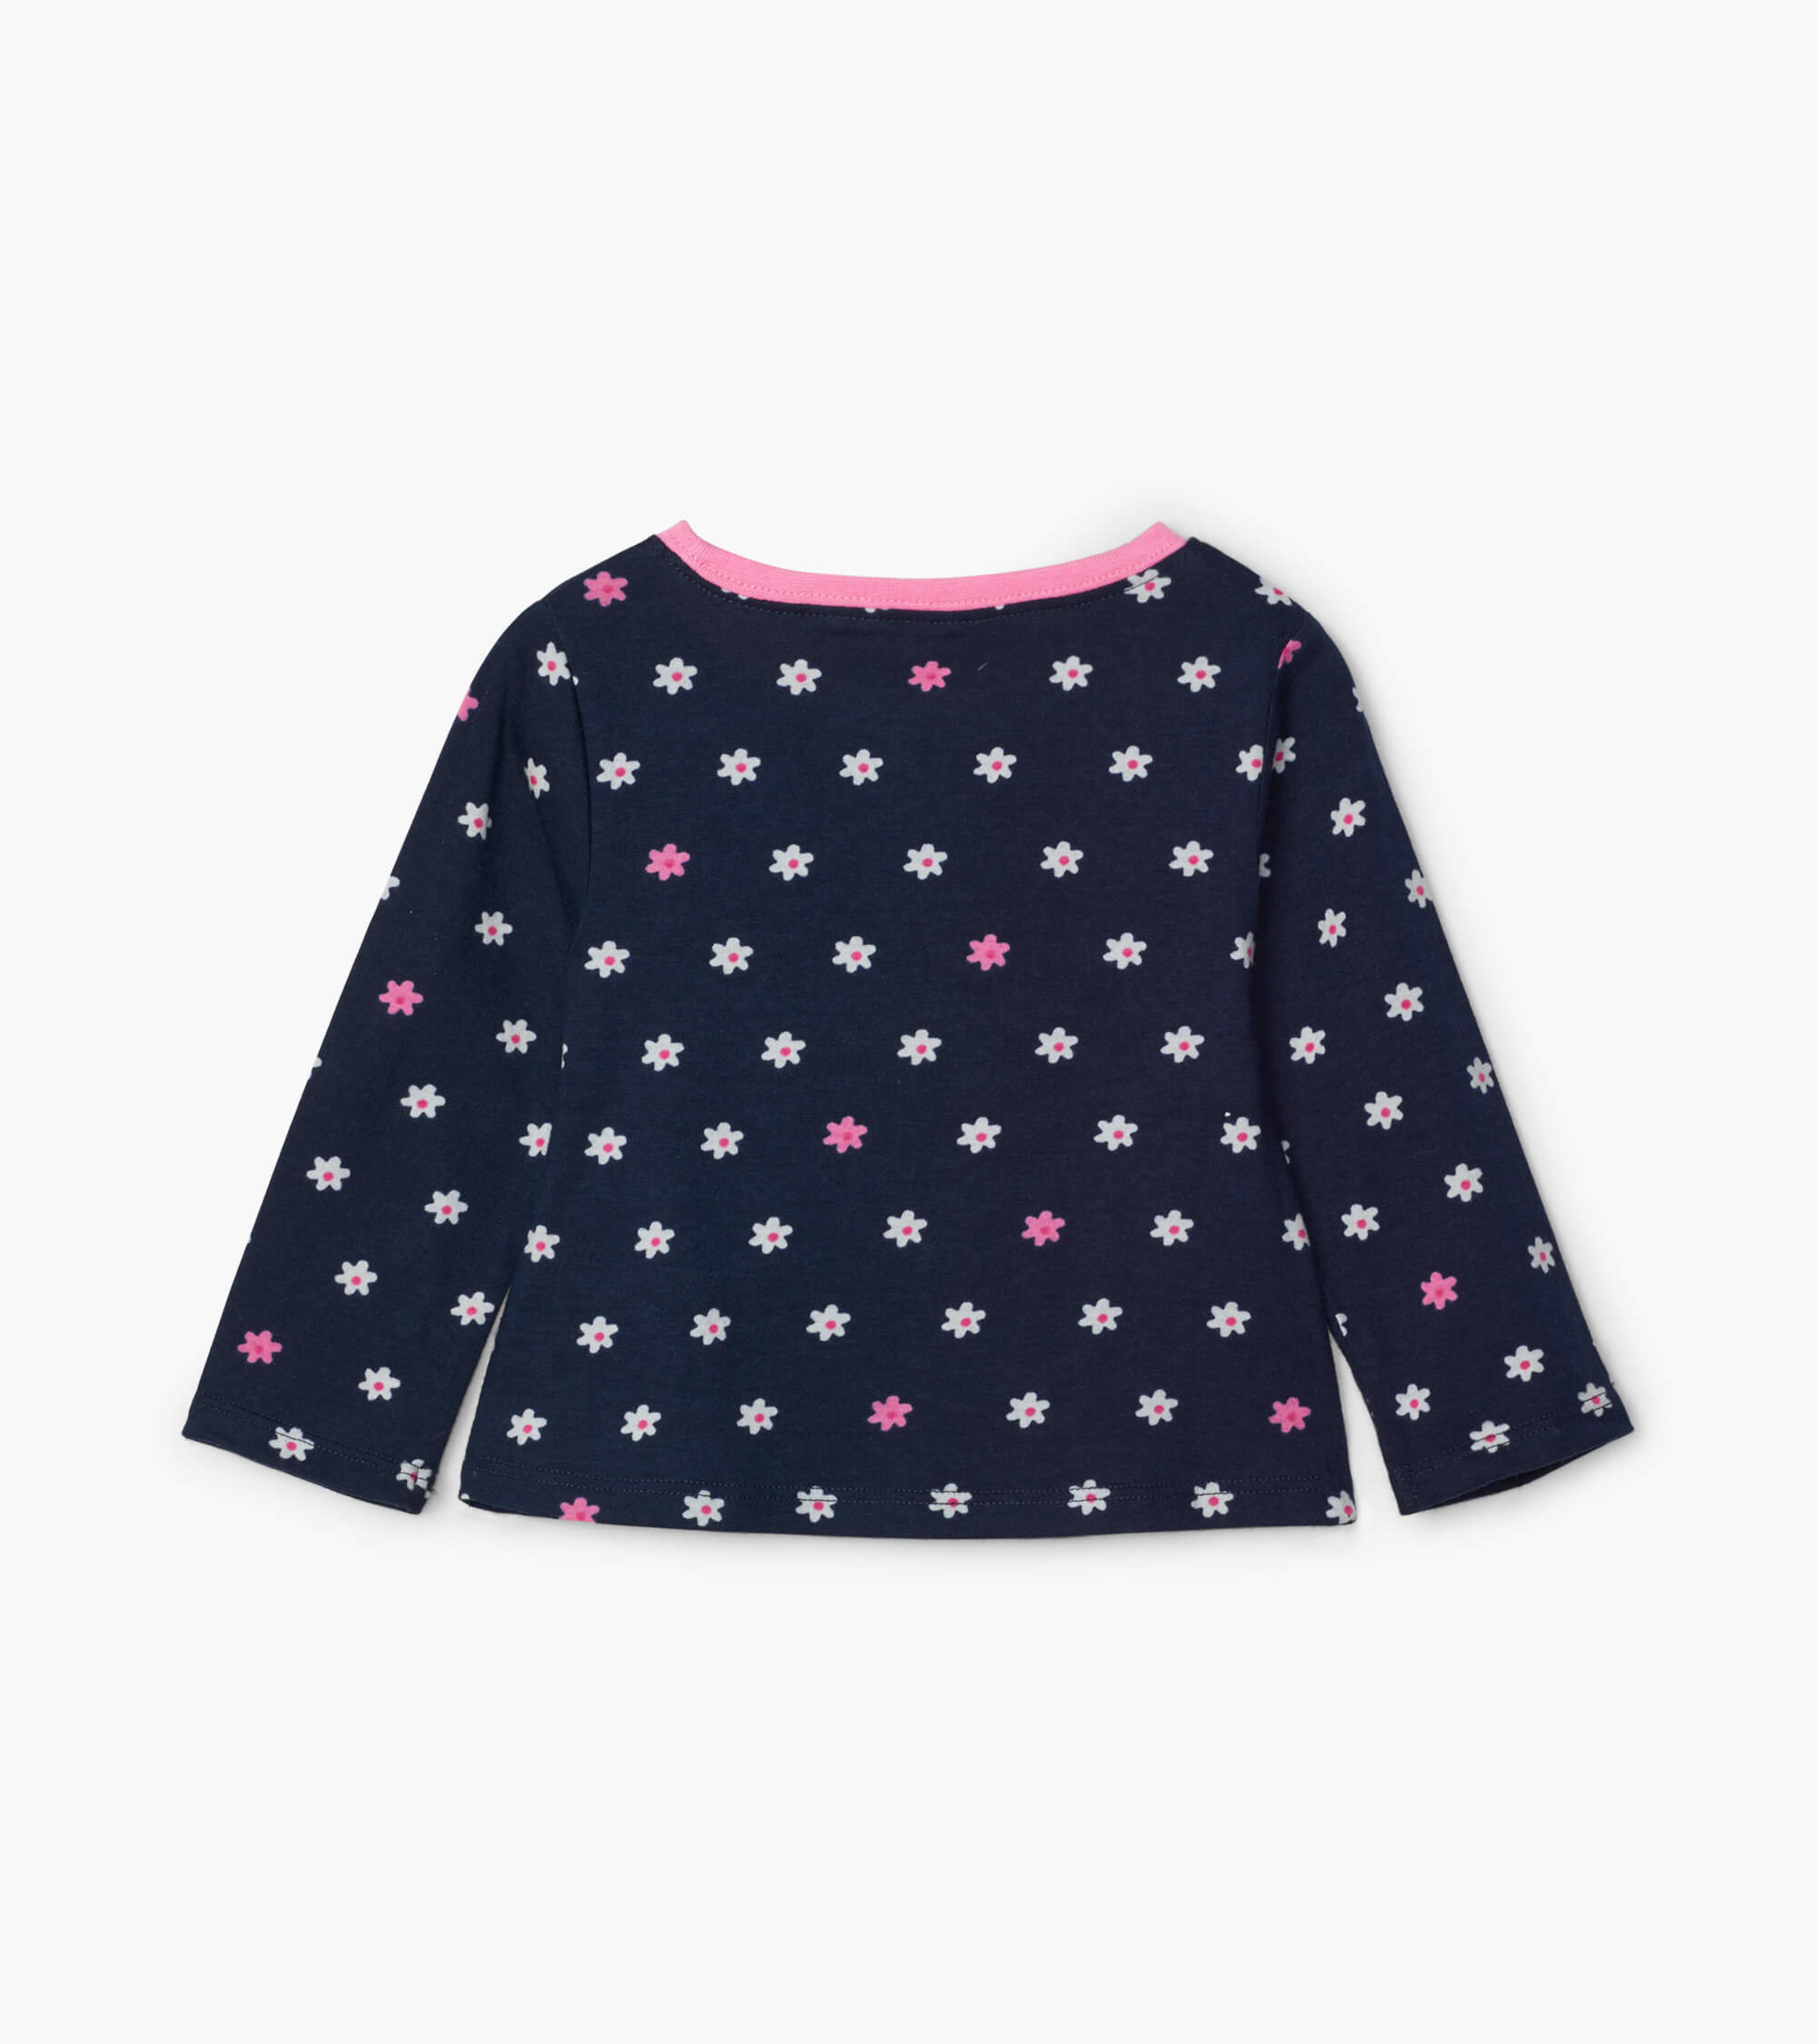 SALE £16.00 Hatley Dainty Blooms Long Sleeve Baby Tee (was £20)